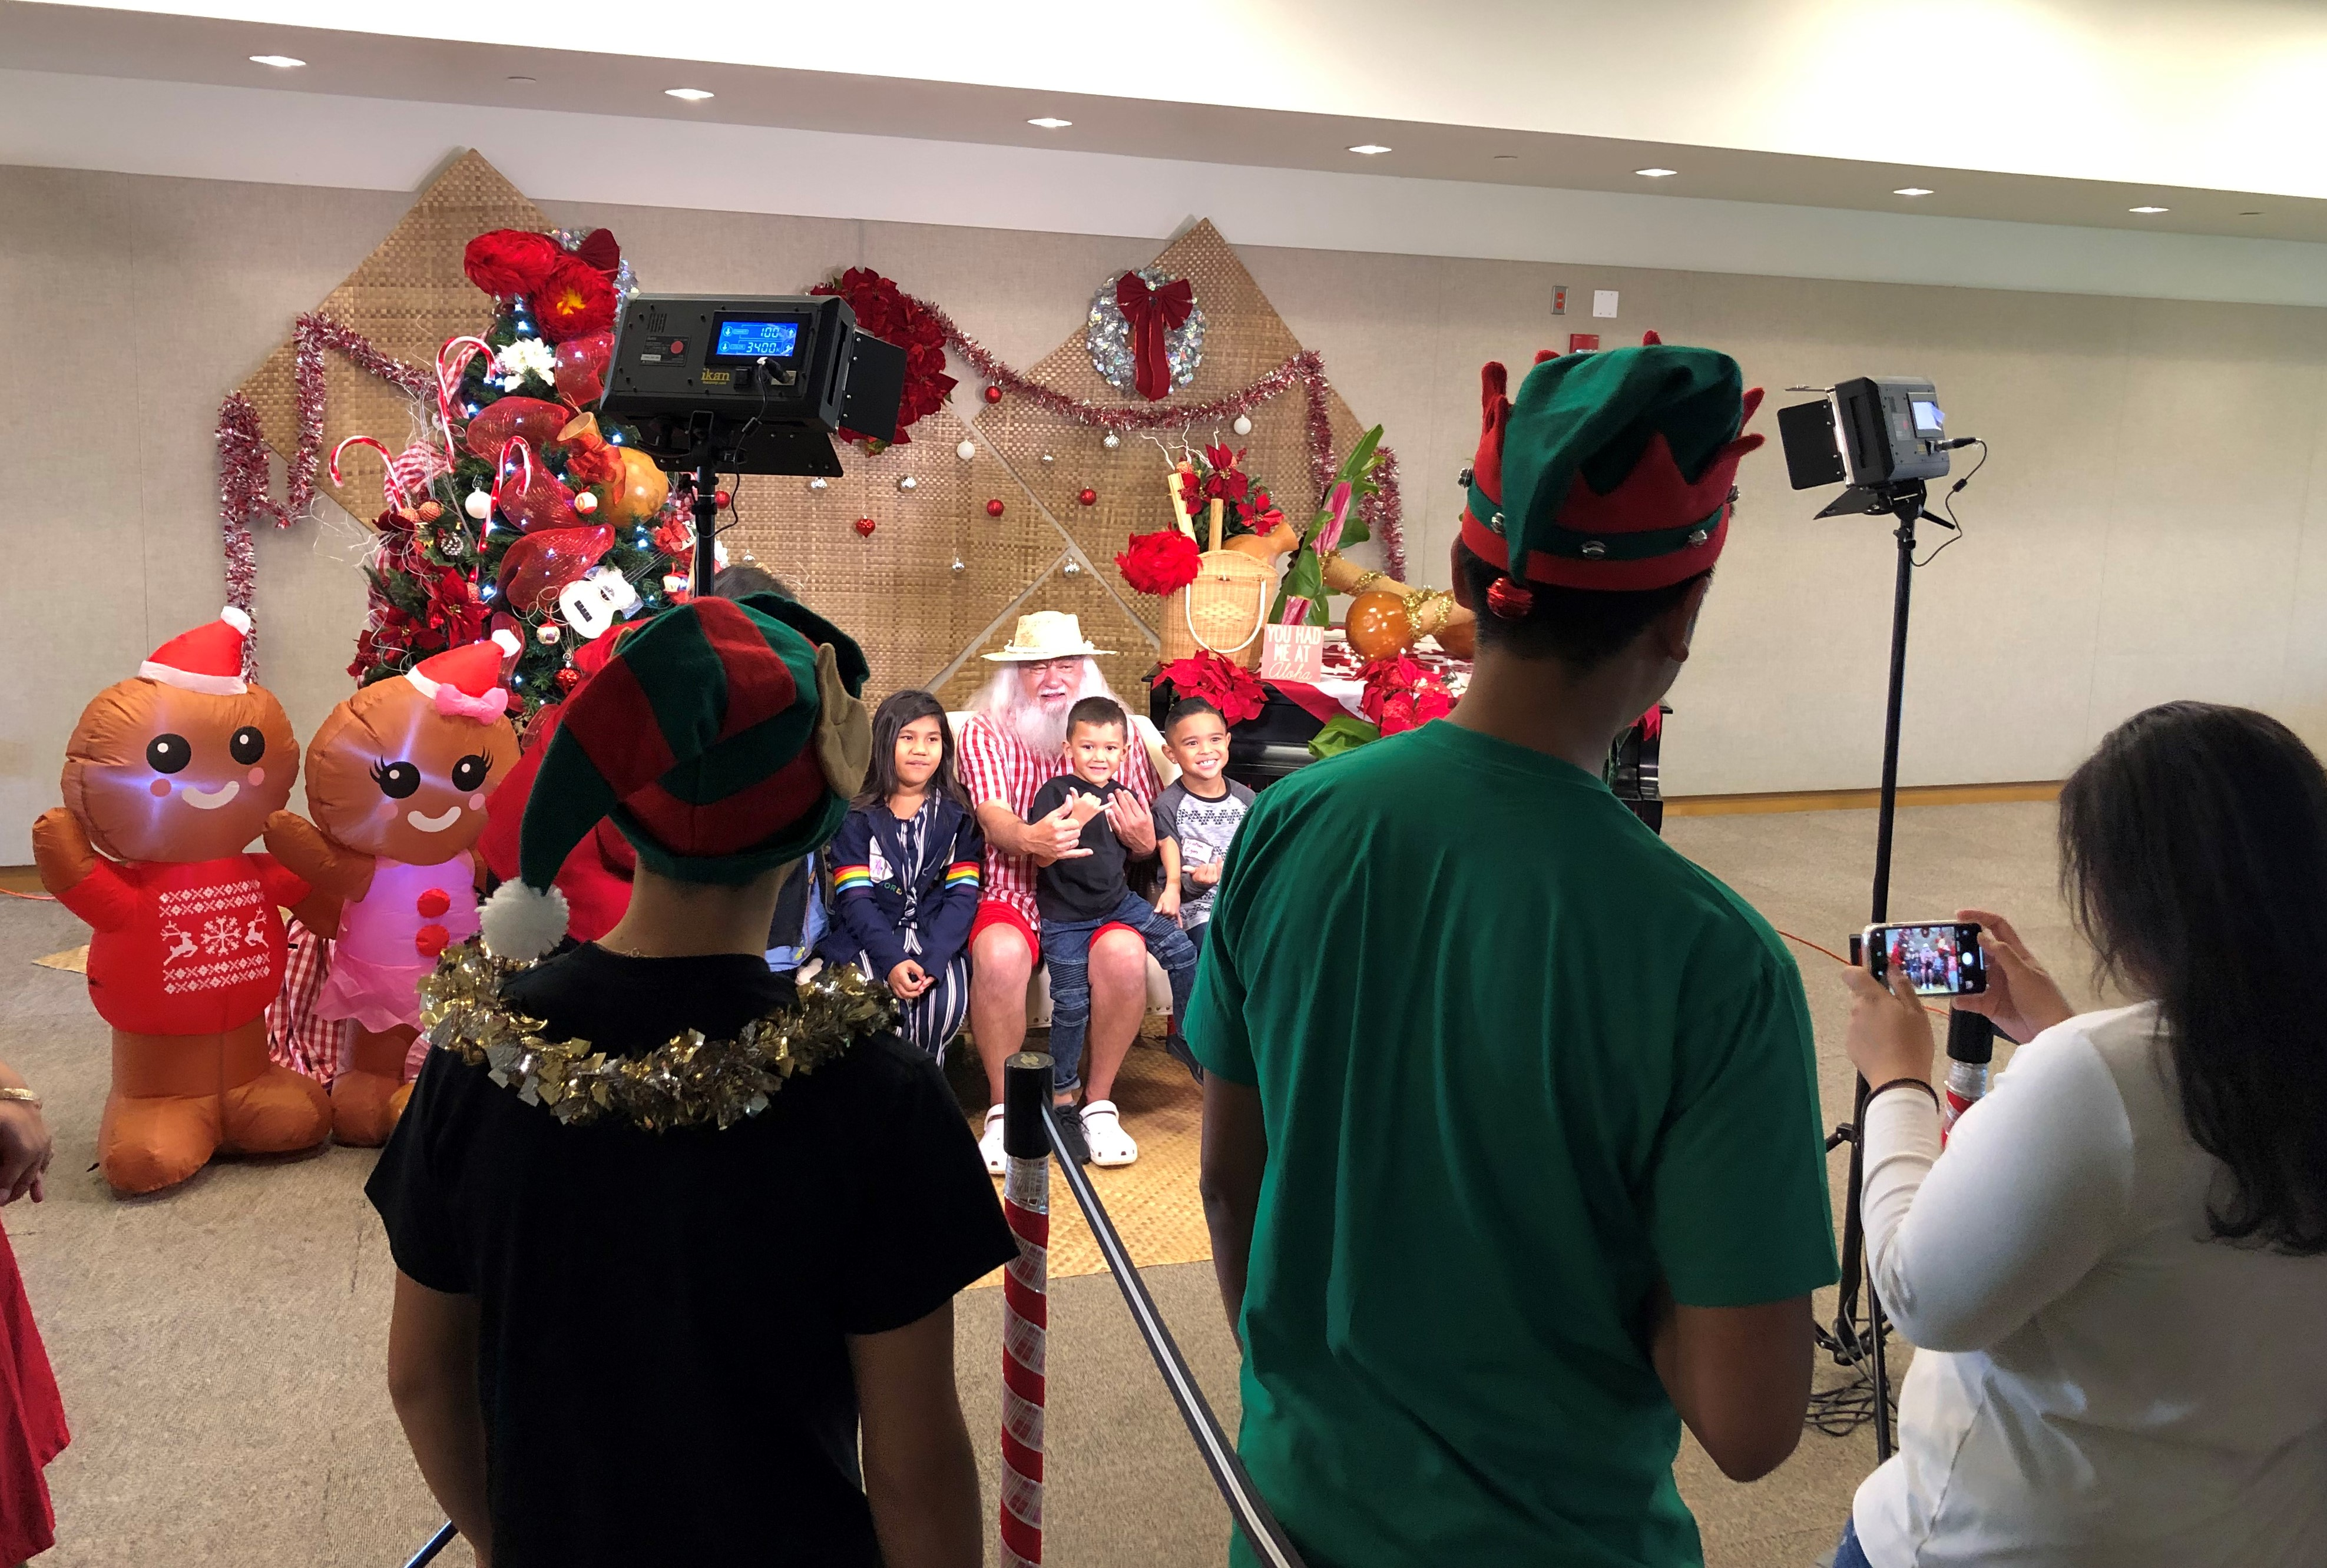 Photo of children sitting with Santa in shorts being photographed and watched by other people